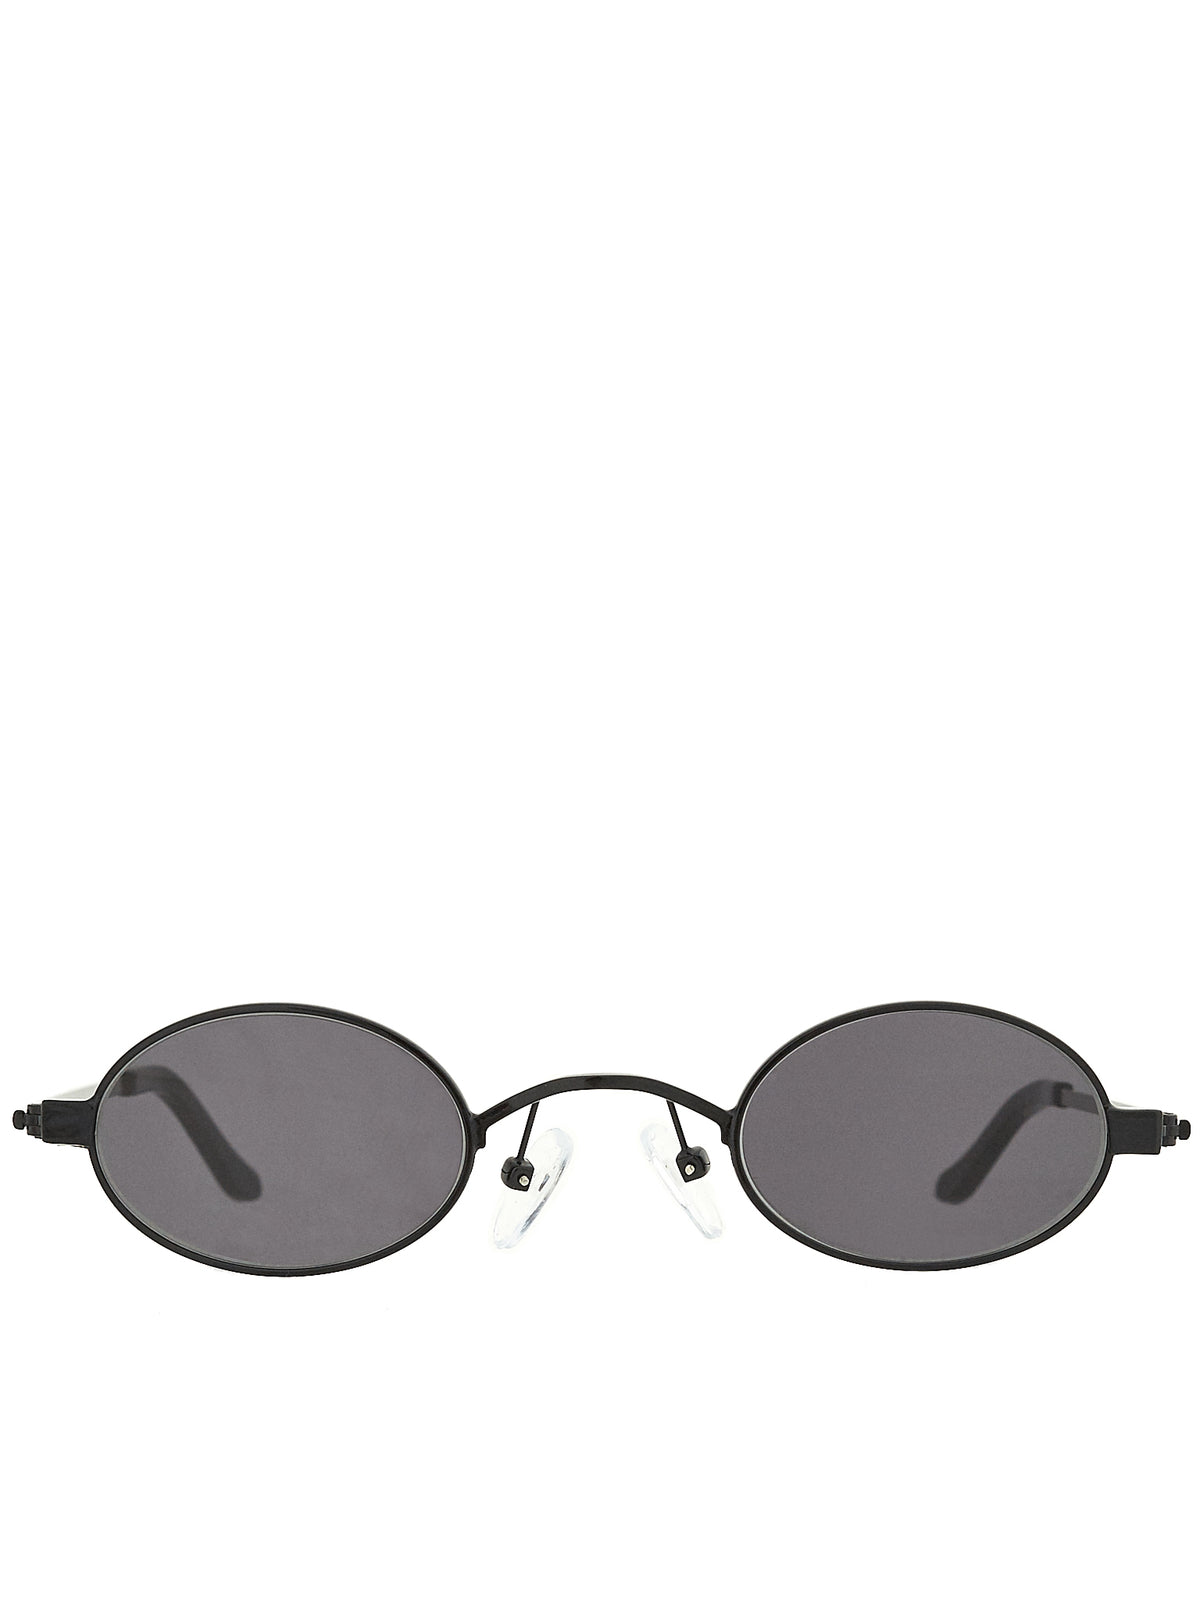 Roberi & Fraud Black Sunglasses - Hlorenzo Front